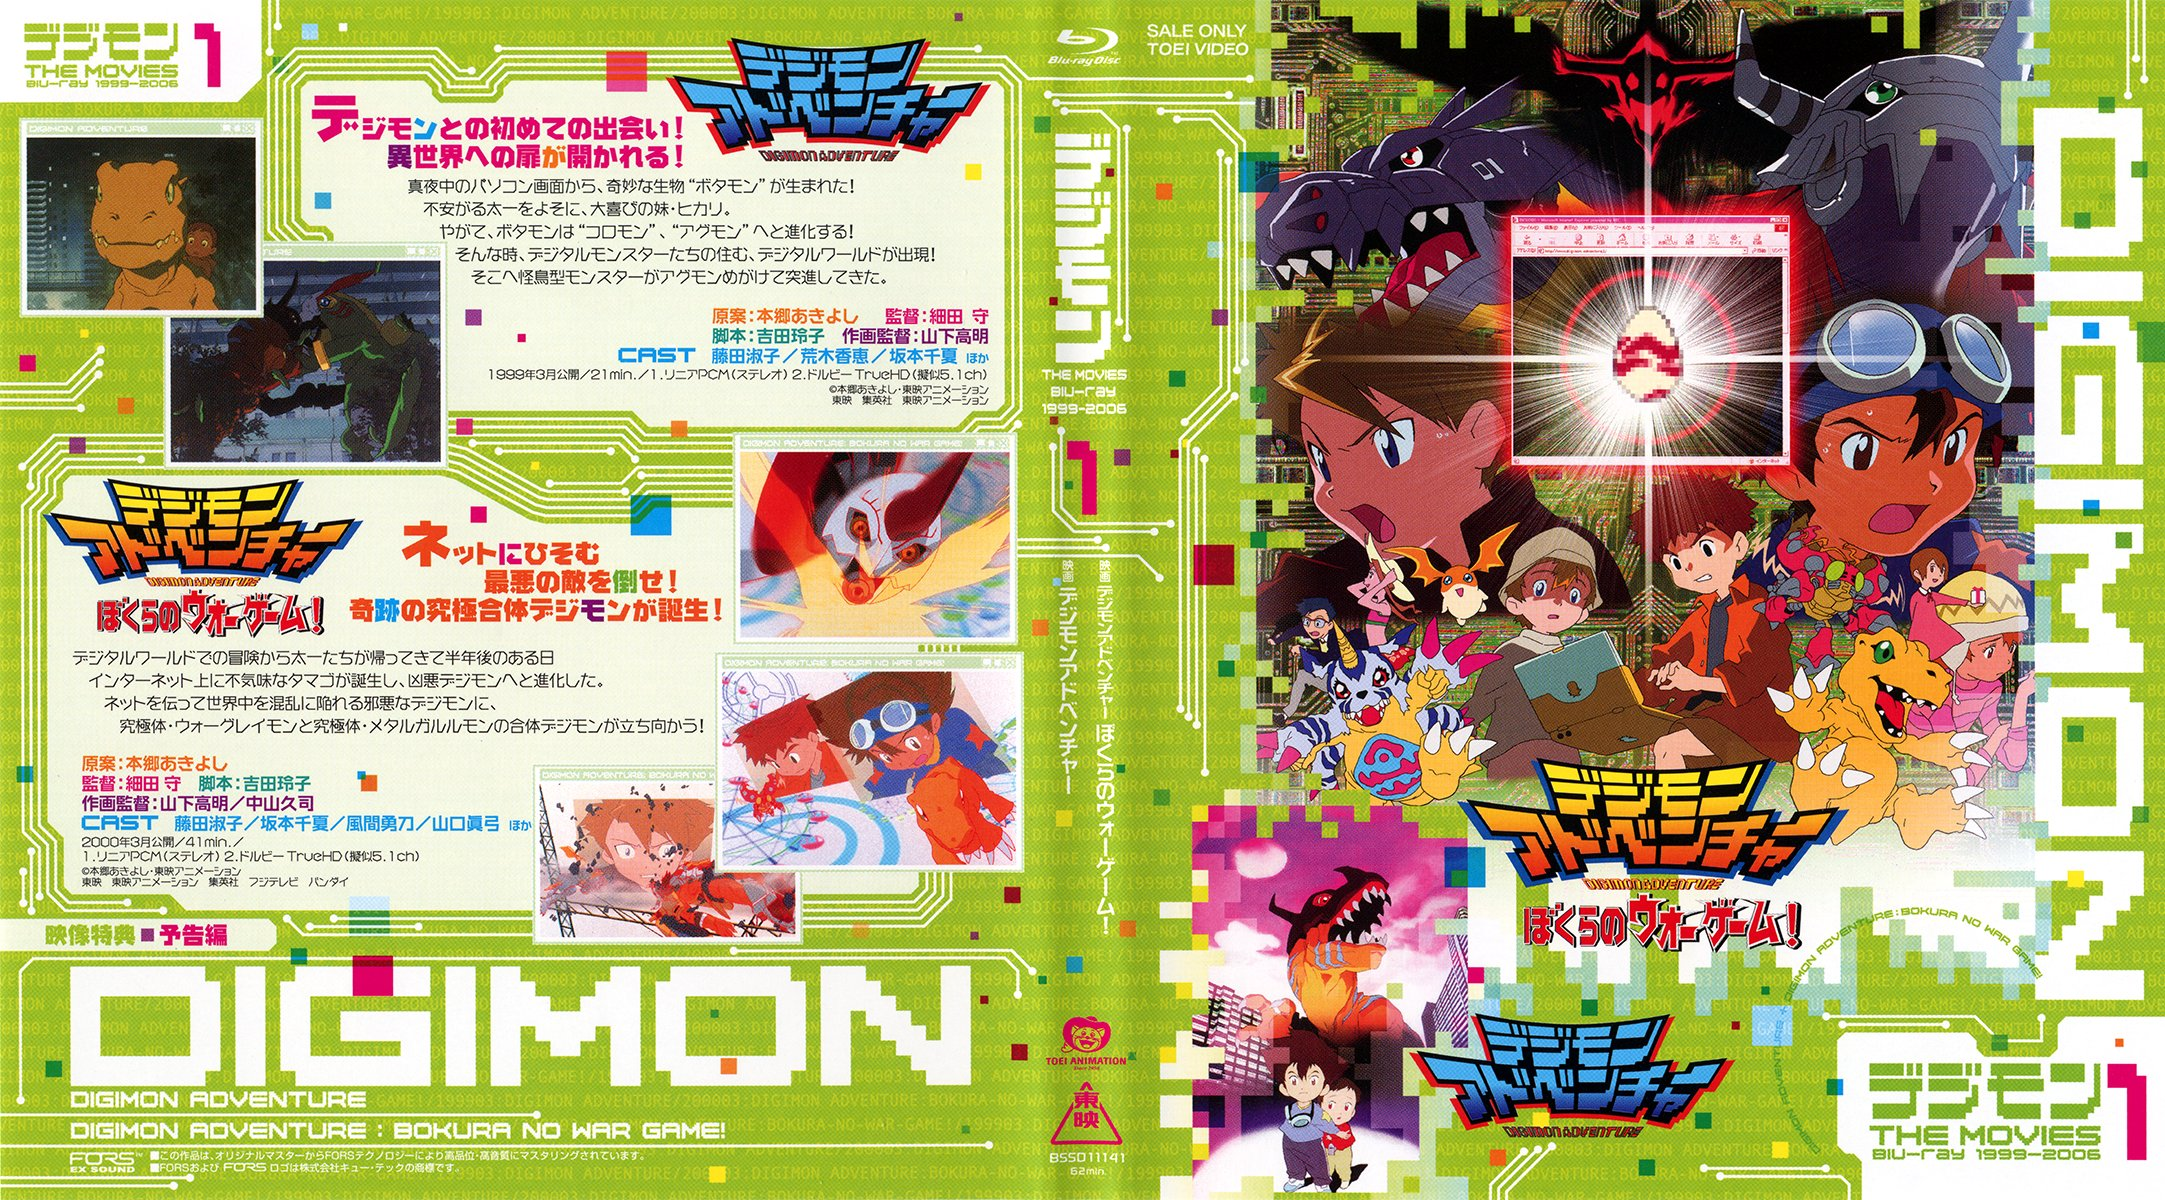 Digimon Adventure 15th Anniversary Project - New Digimon ...